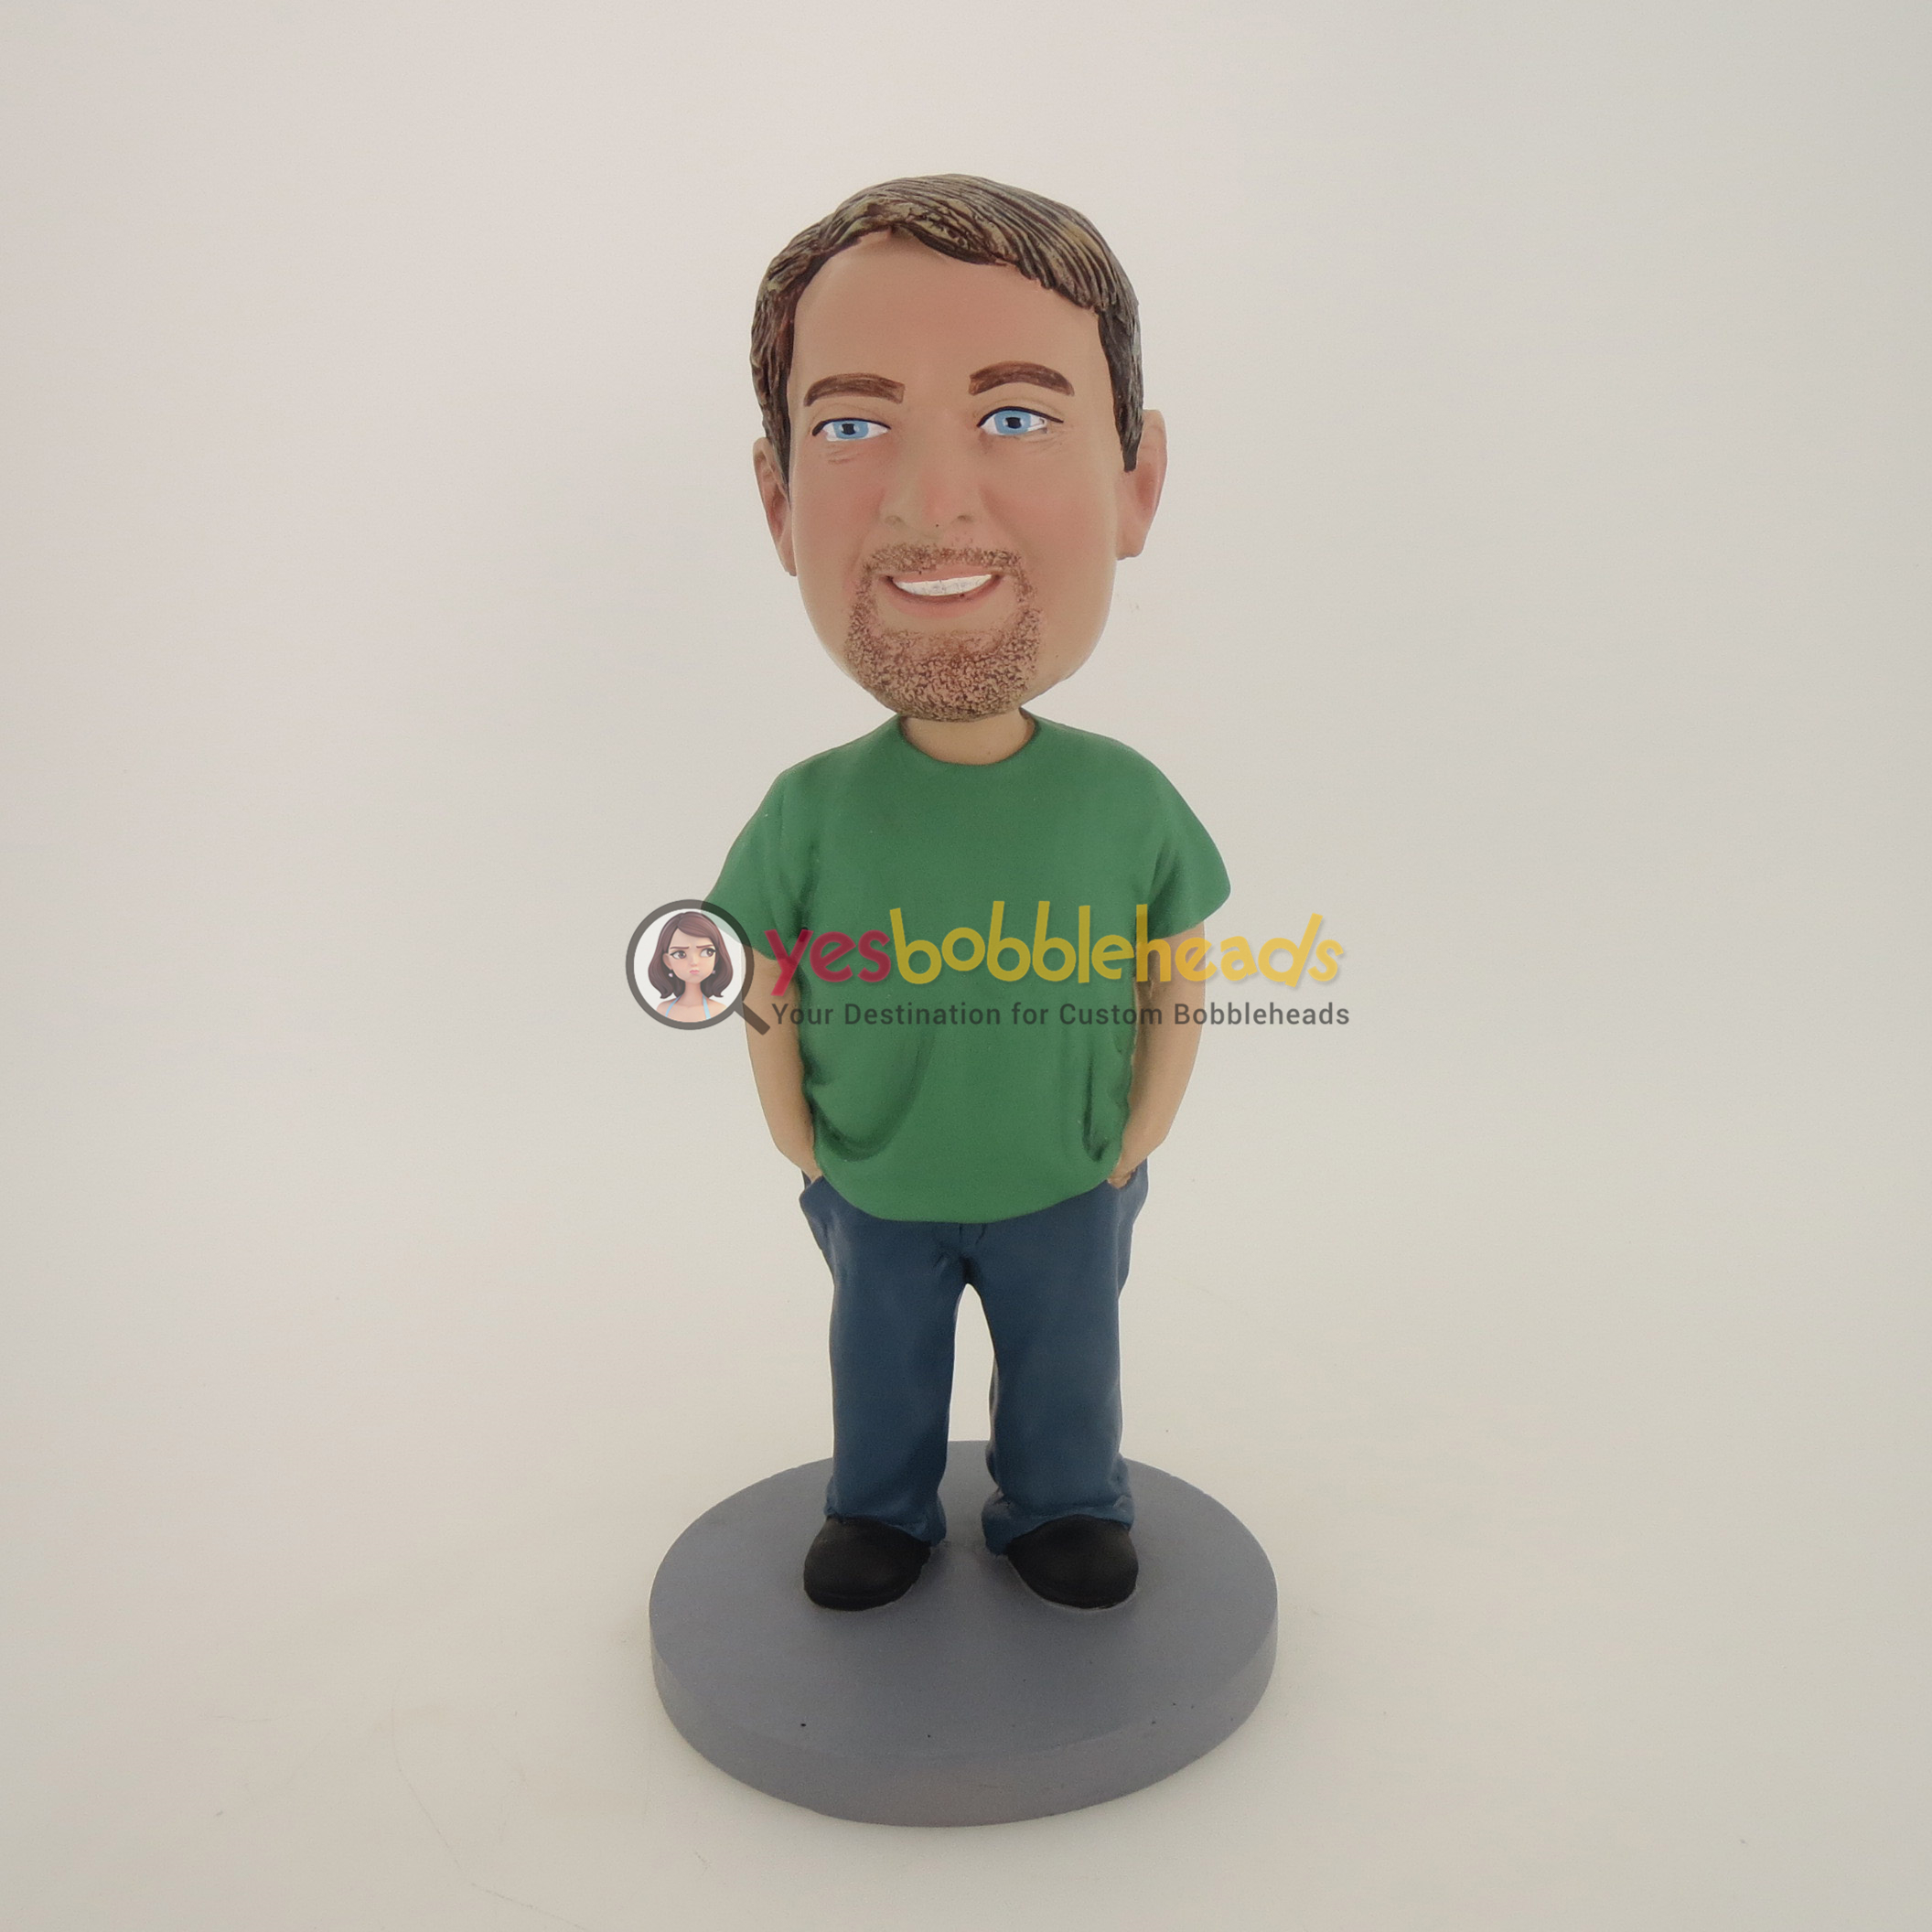 Picture of Custom Bobblehead Doll: Casual Man With Beard Having His Hands In Pocket